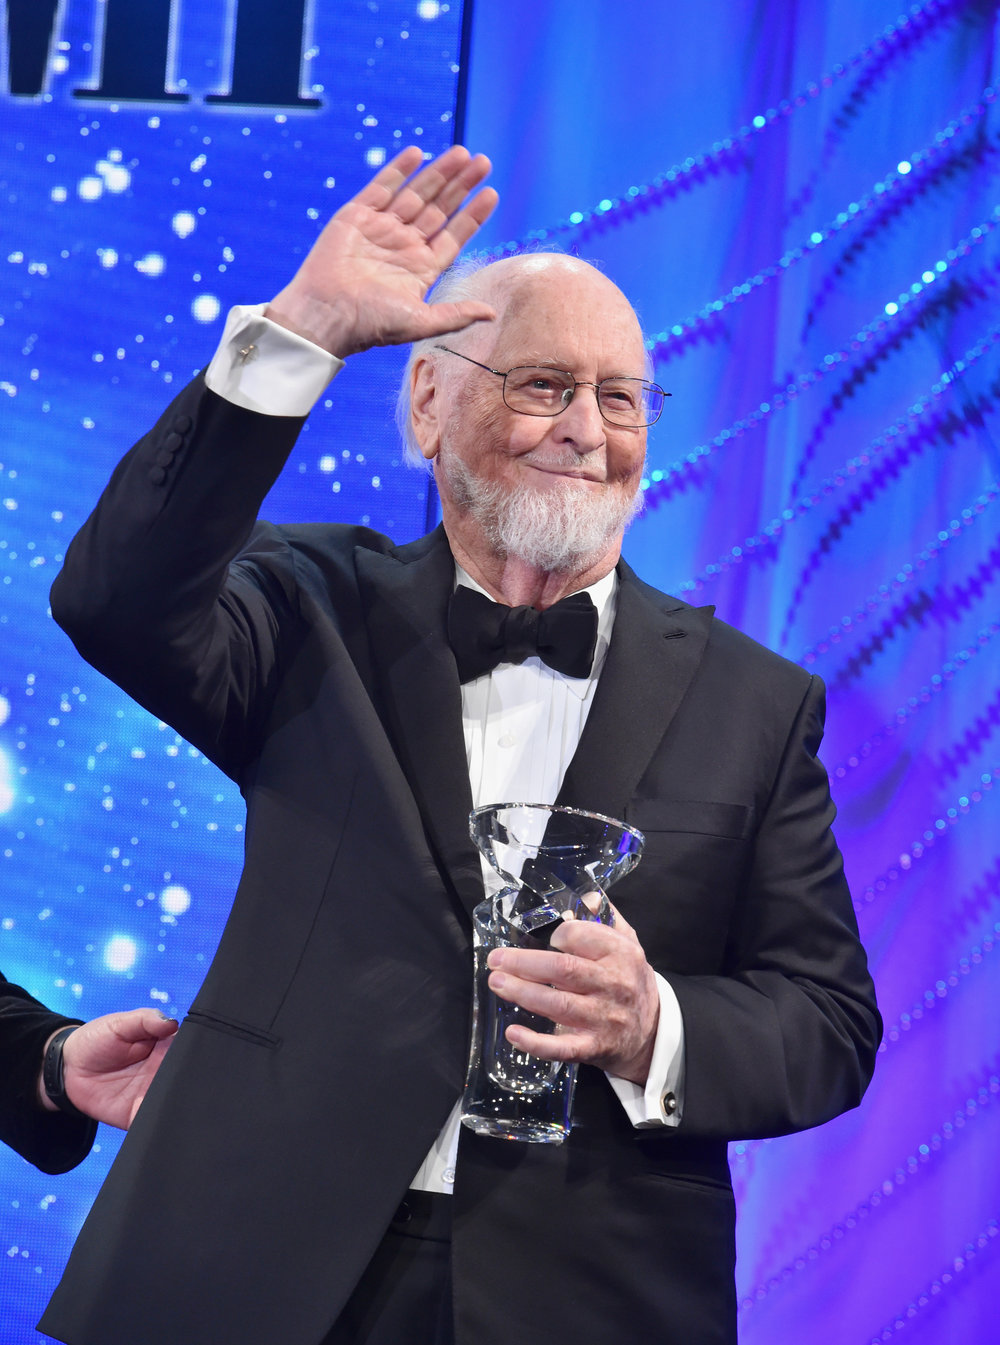 BEVERLY HILLS, CA - MAY 09:  John Williams accepts The John Williams Award onstage during 34th Annual BMI Film, TV & Visual Media Awards at Regent Beverly Wilshire Hotel on May 9, 2018 in Beverly Hills, California.  (Photo by Lester Cohen/Getty Images for BMI) *** Local Caption *** John Williams